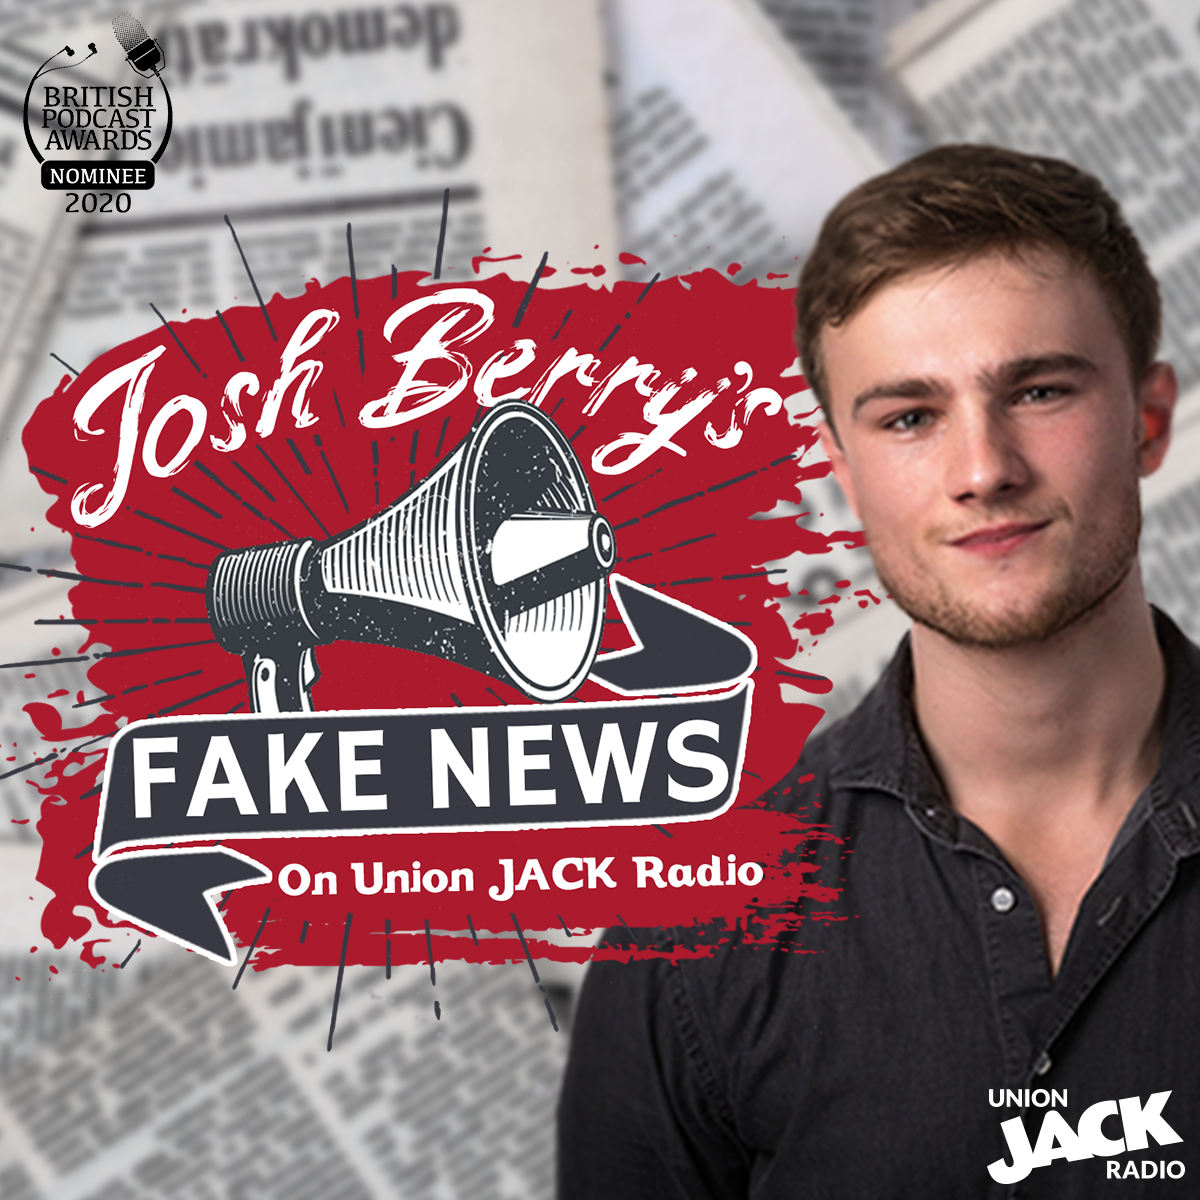 Josh Berry's Fake News